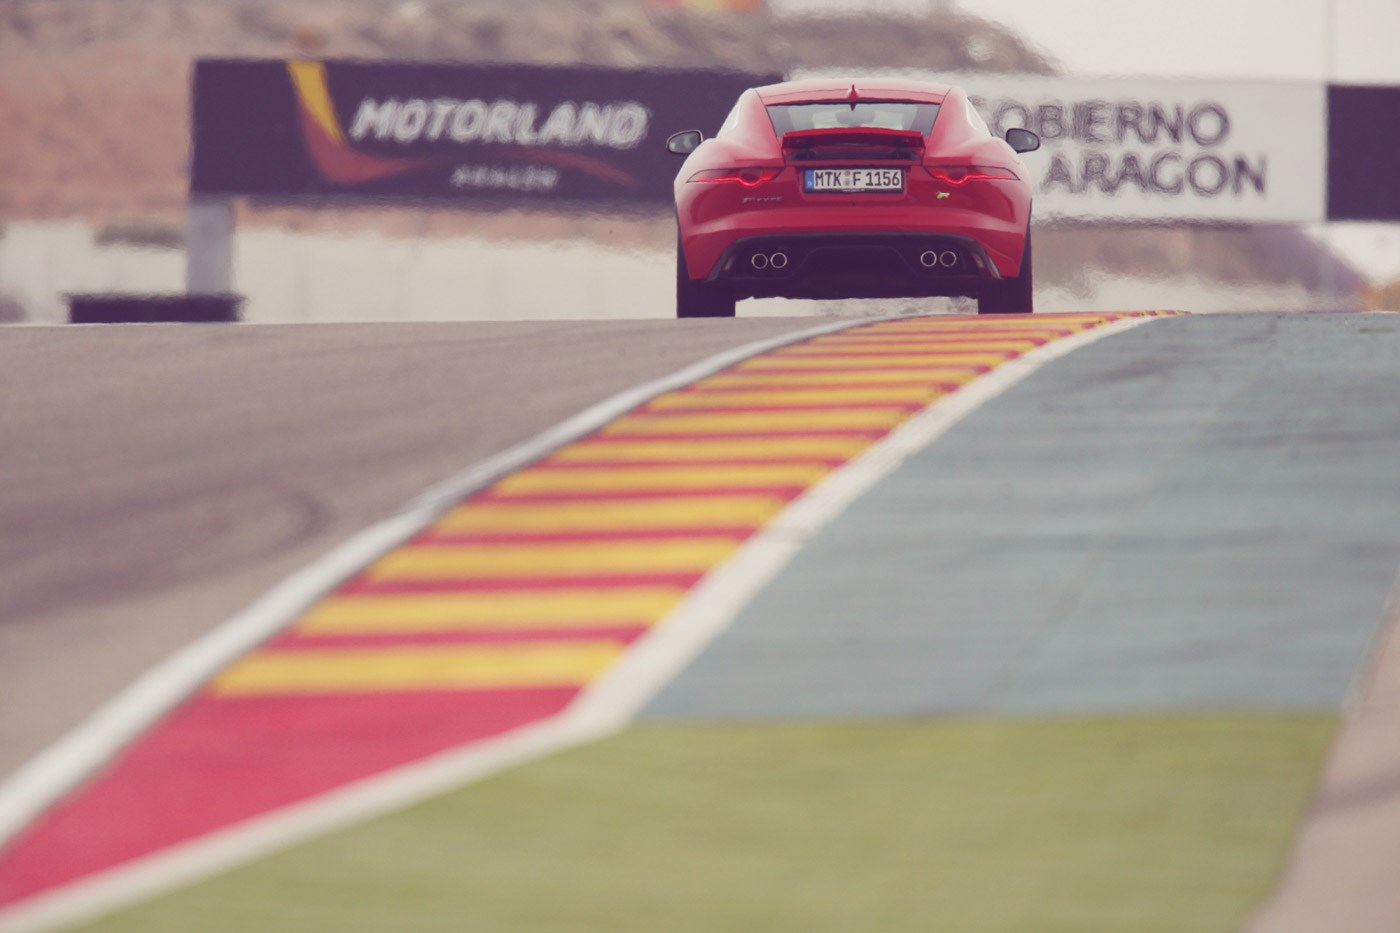 Jaguar F-TYPE Coupé Motorland Circuit 02